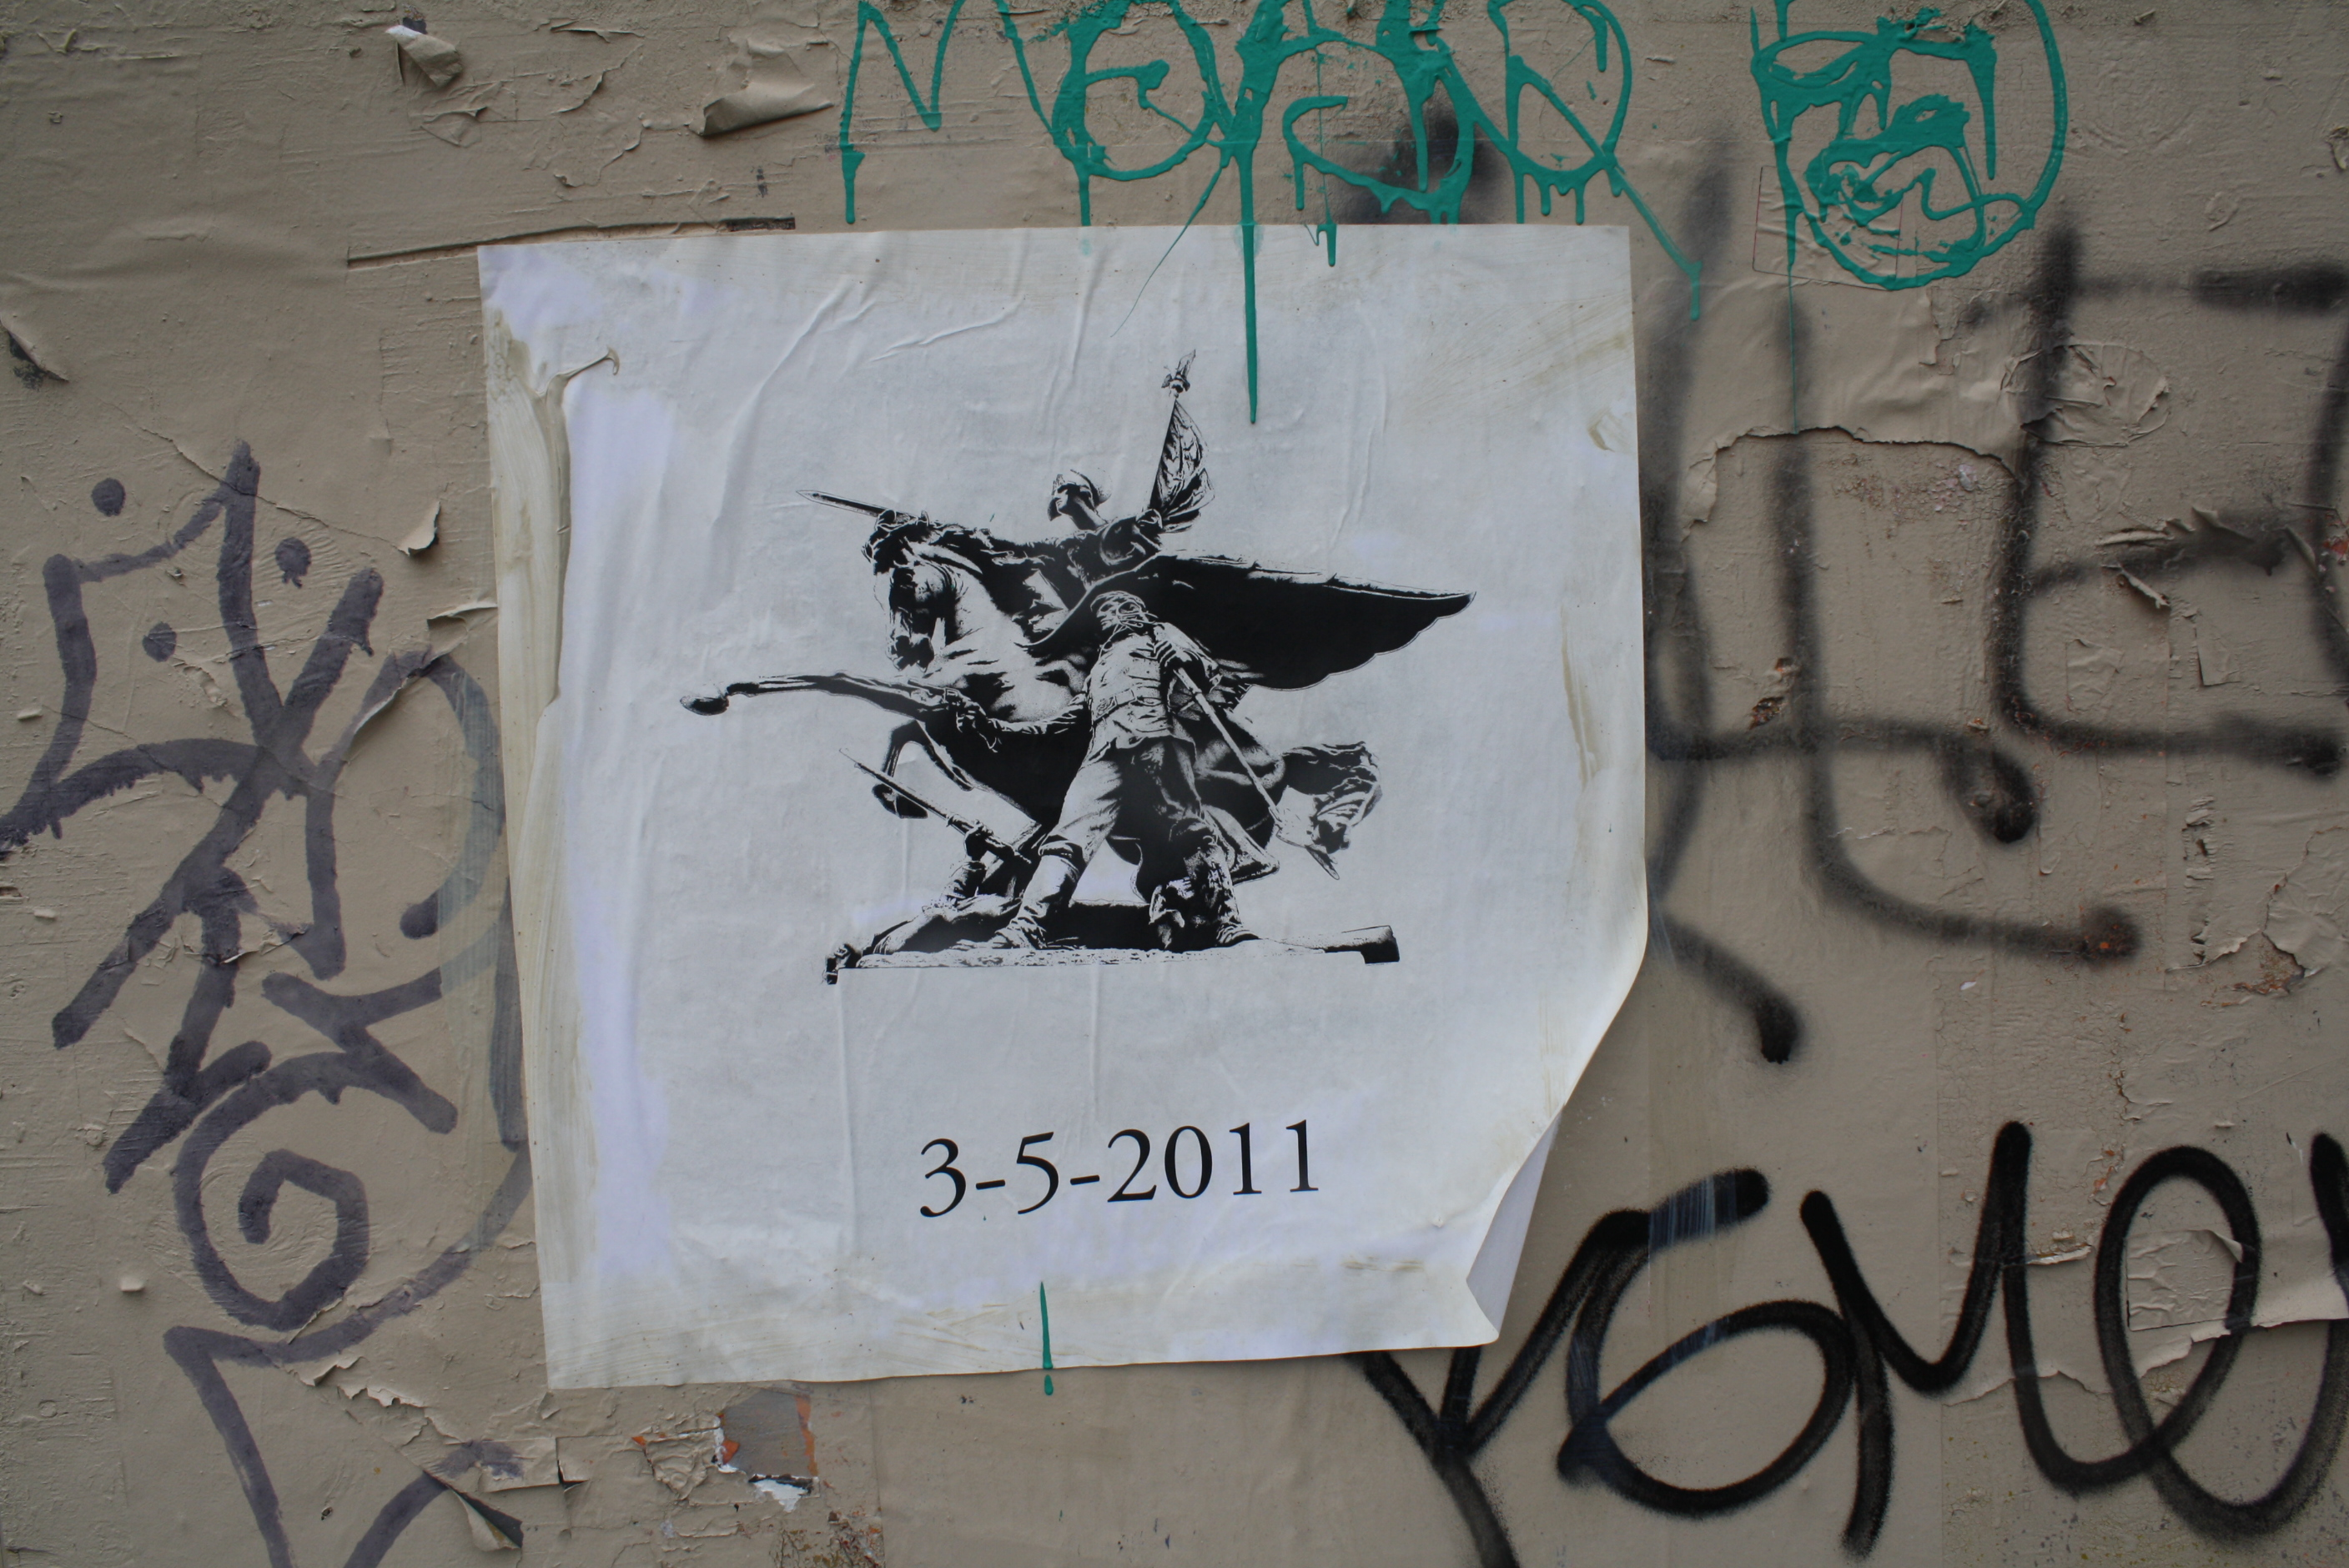 ID This Mystery Wheatpaste and Win a Prize